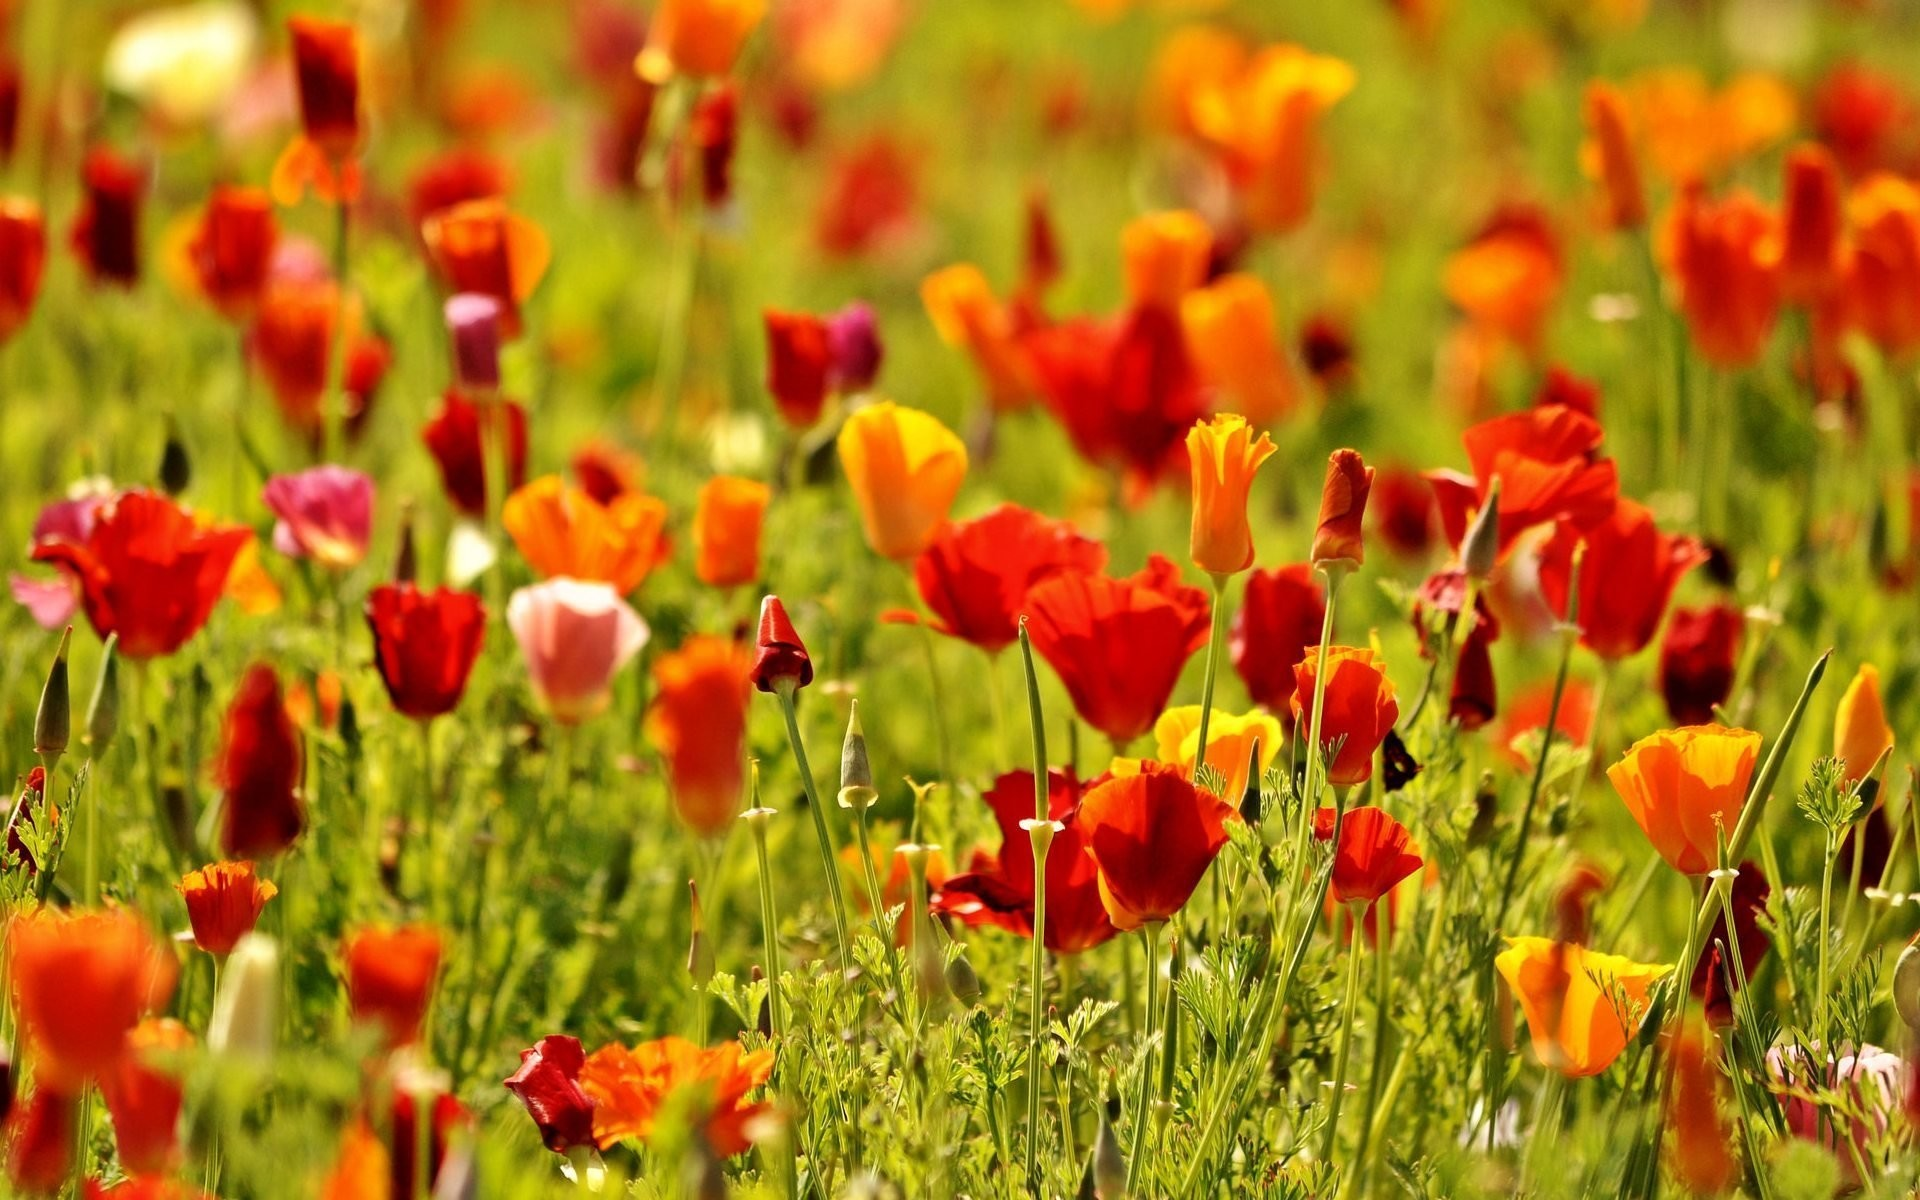 flower flowers flower flowers poppies poppy red the field nature green  flowers flower nature macro background